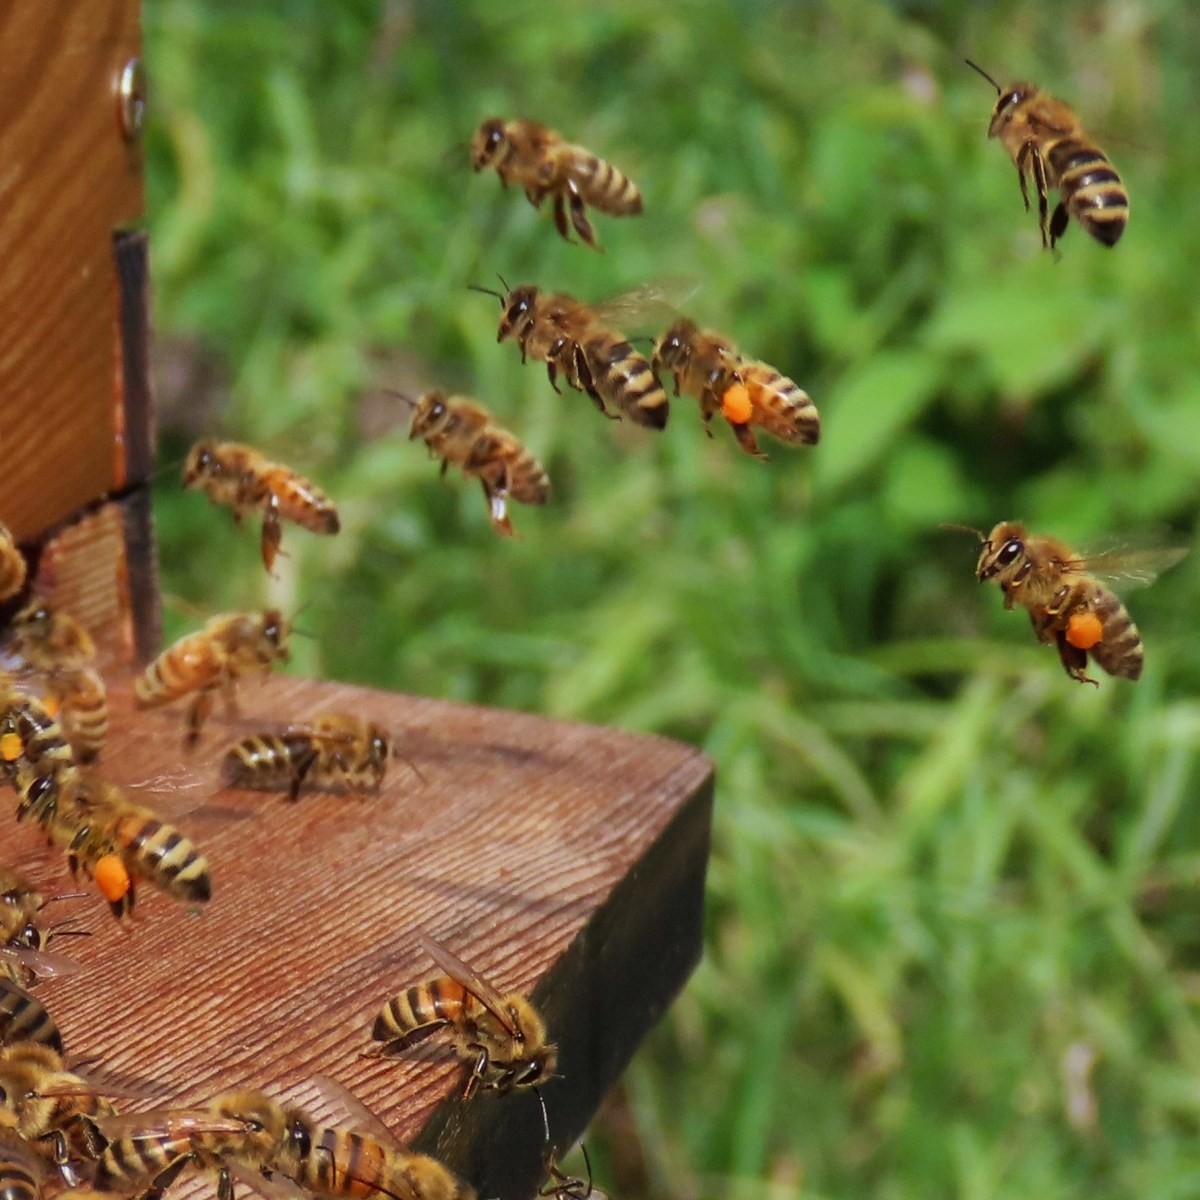 Several honey bees in flight and about to enter their hive